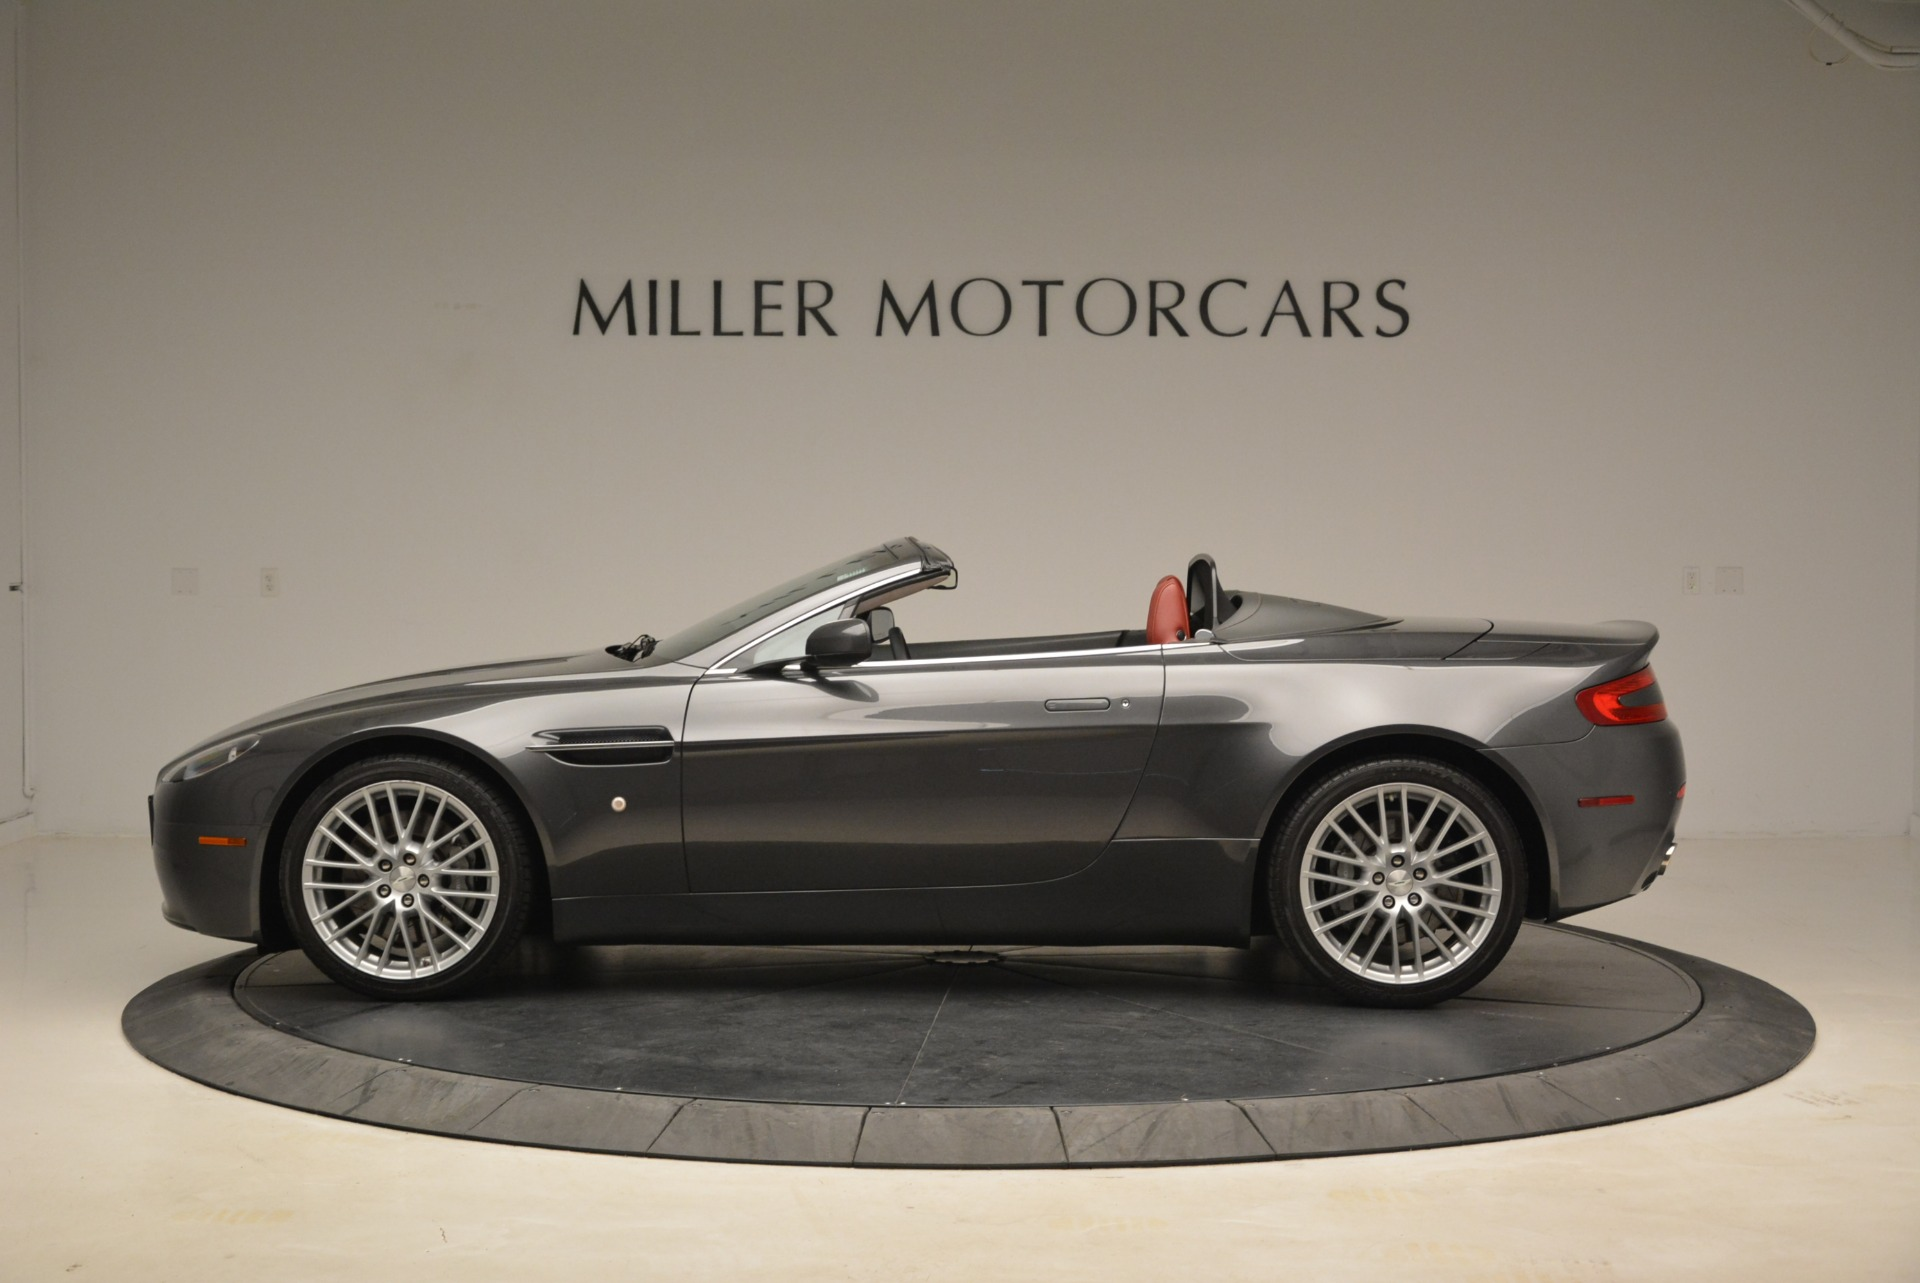 Used 2009 Aston Martin V8 Vantage Roadster For Sale In Westport, CT 2123_p3